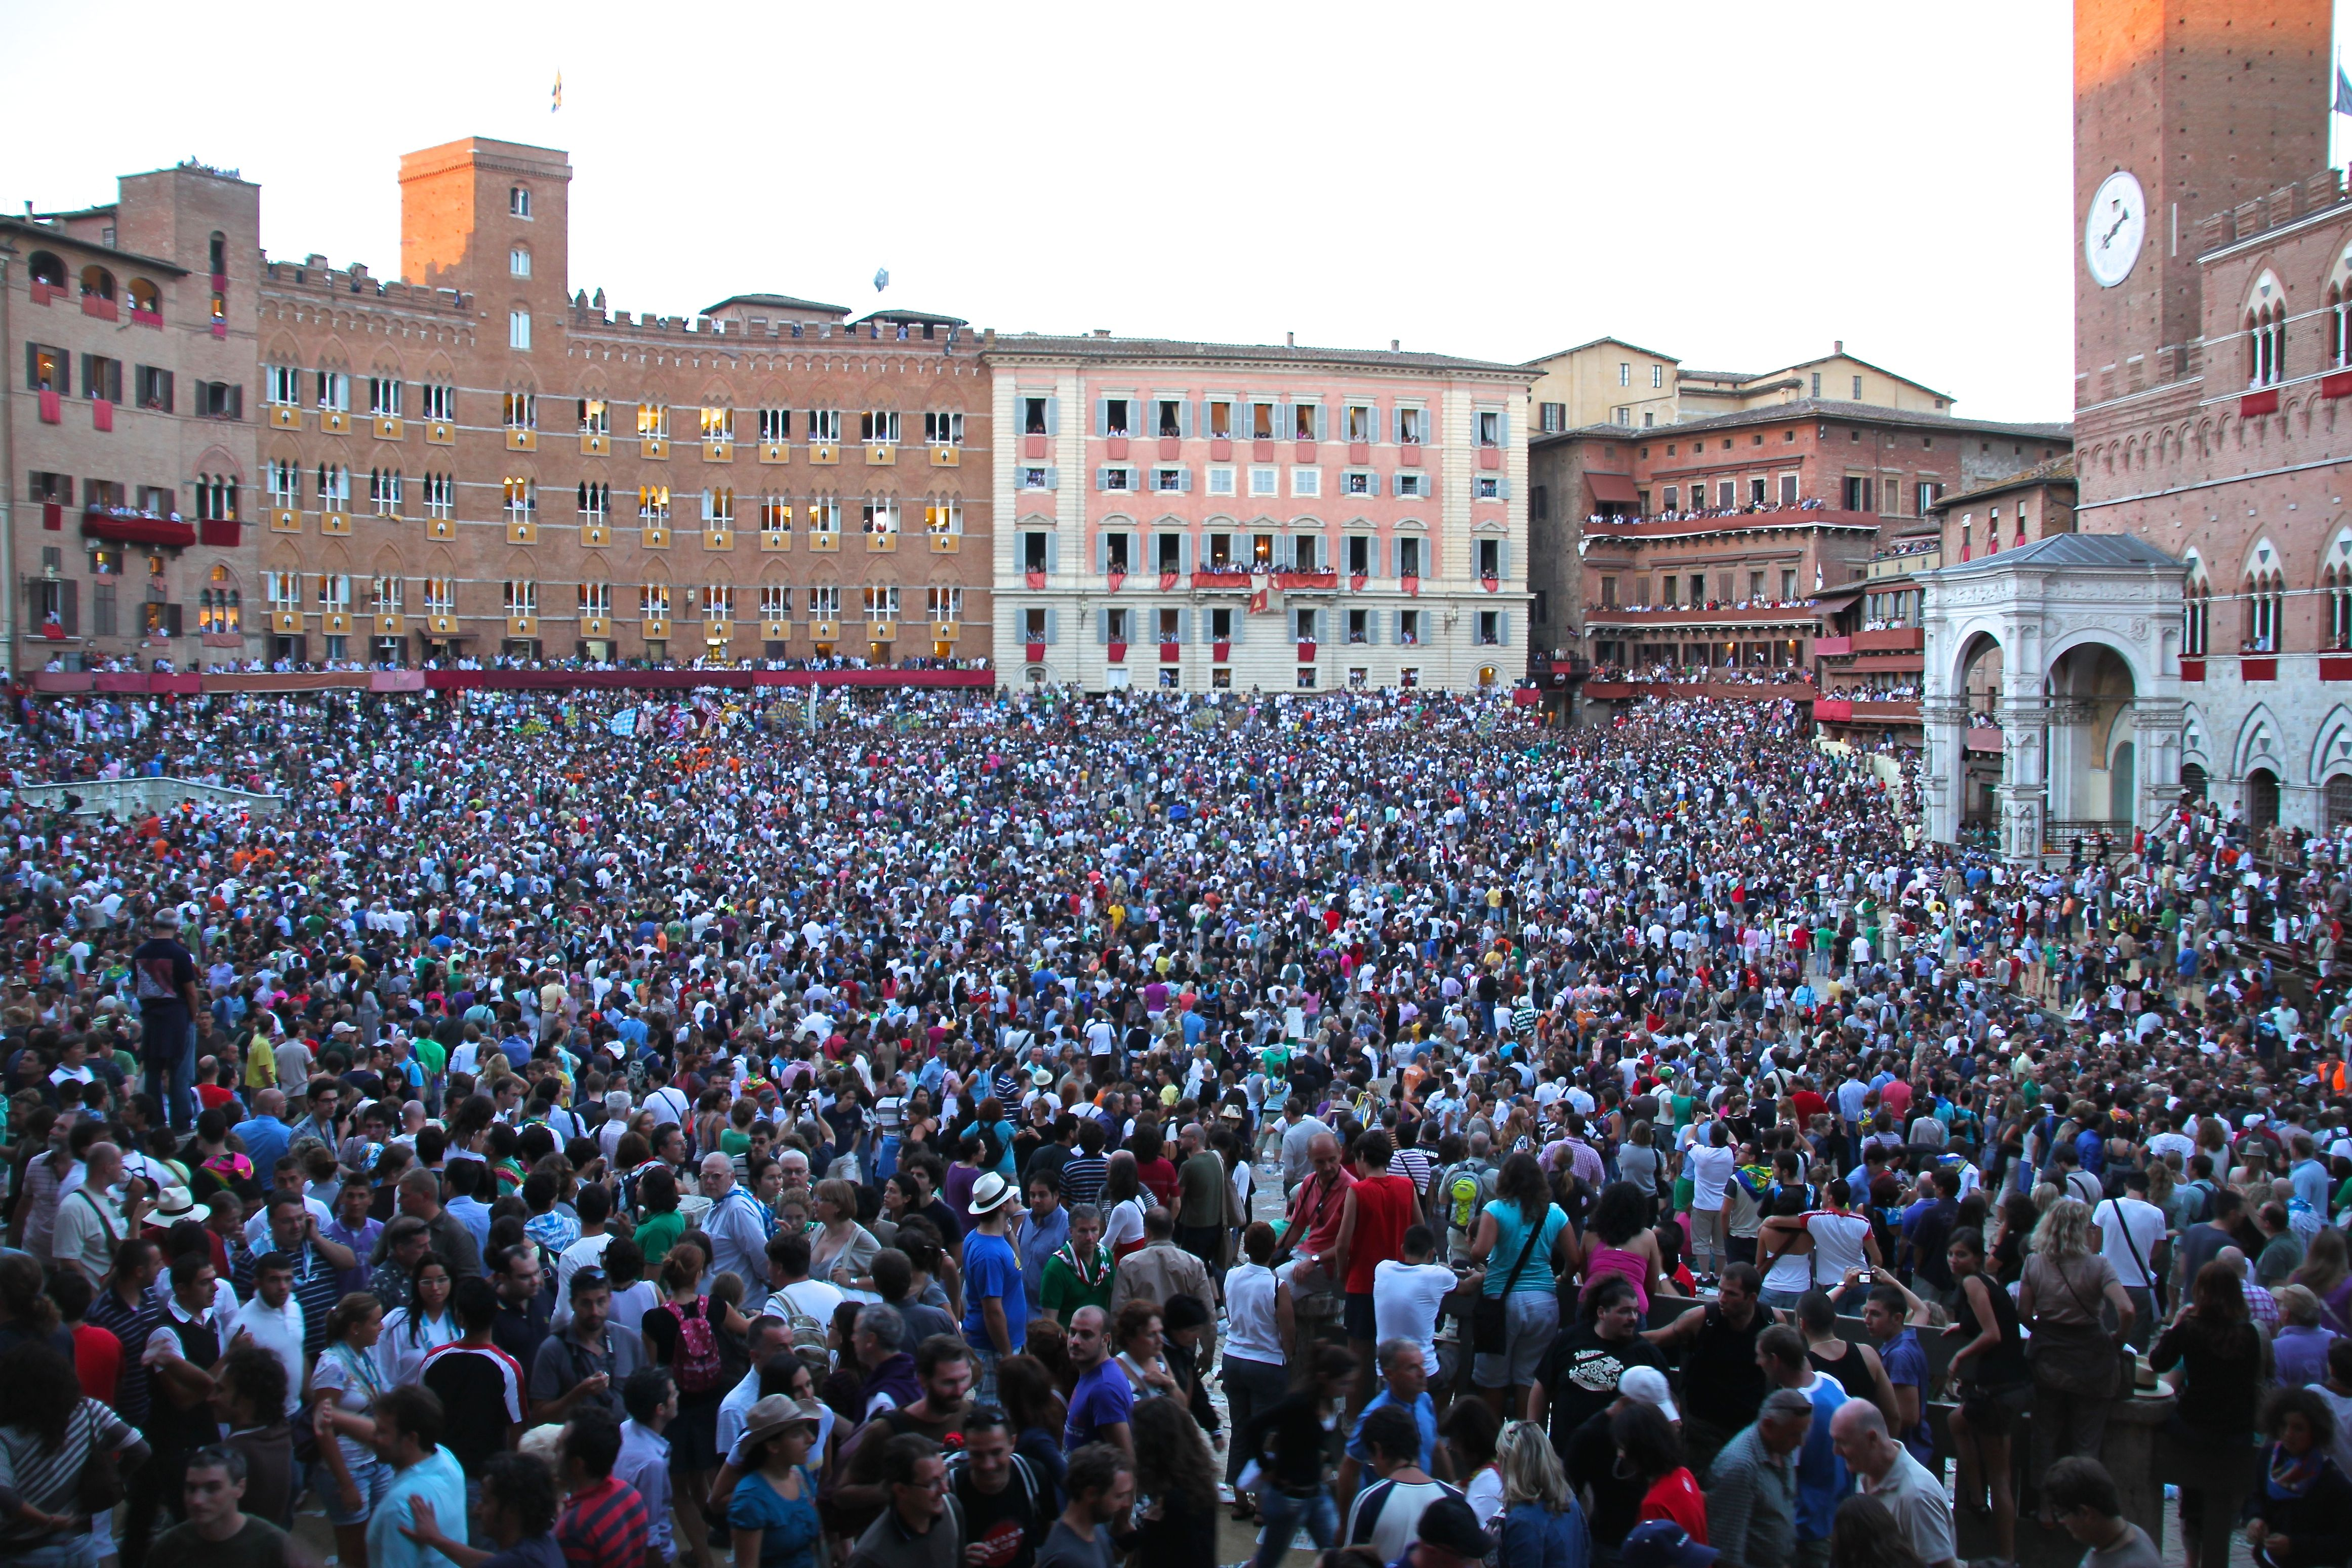 Over 40,000 people are packed into Siena's famous Piazza del Campo to watch the Palio horse race